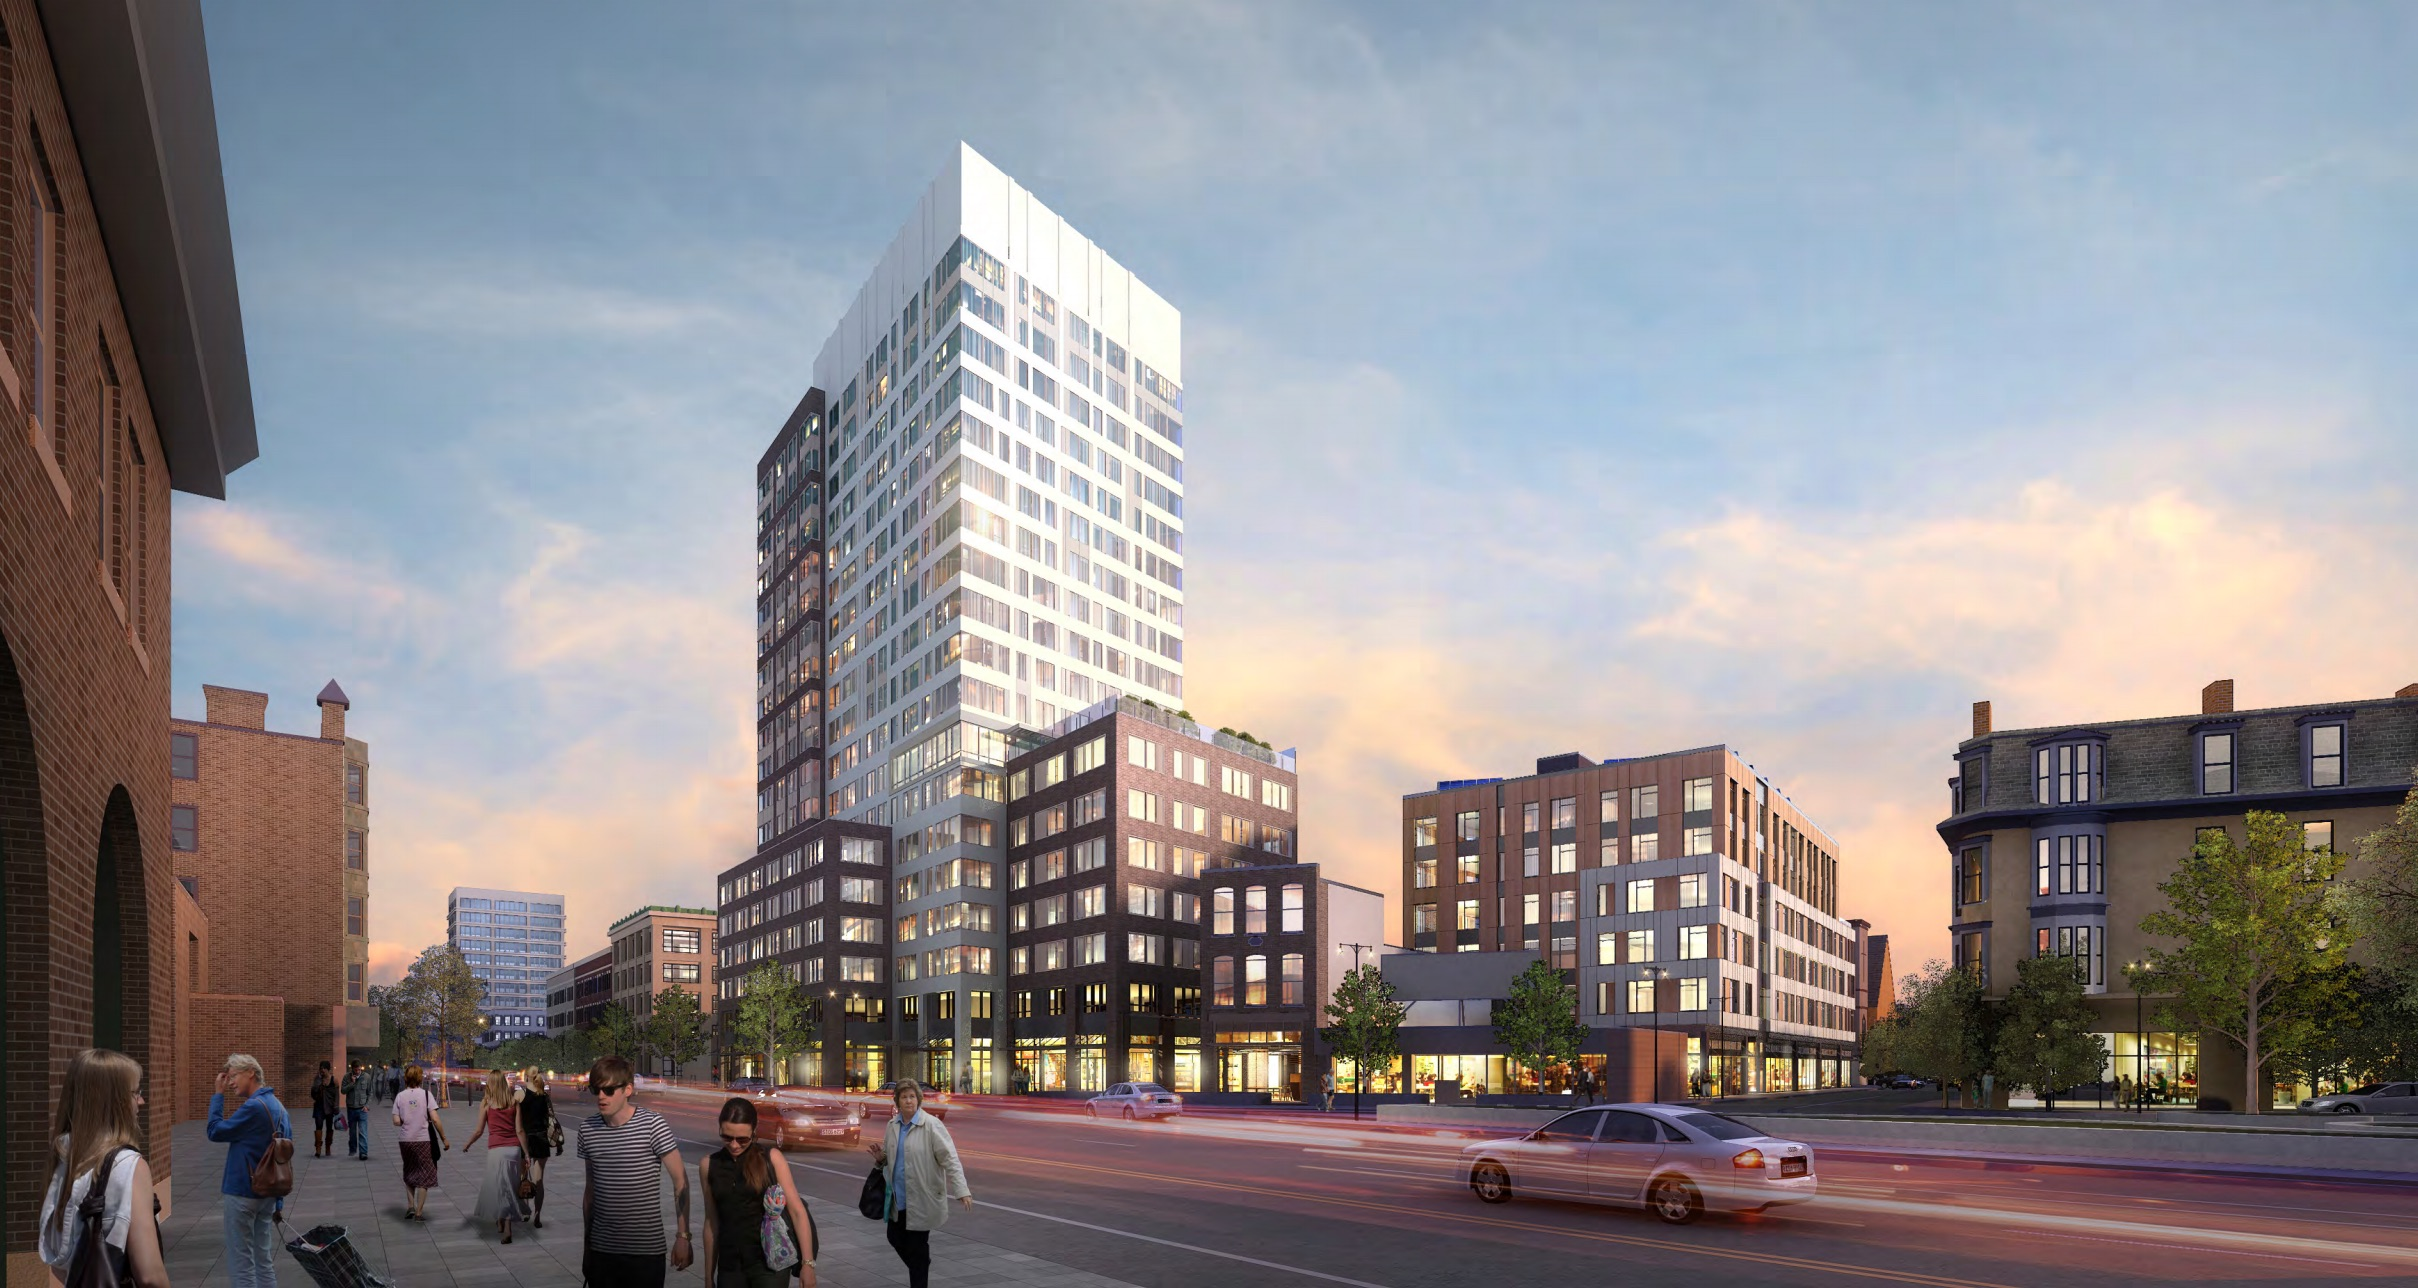 Mass main development central square cambridge apartments retail twining properties